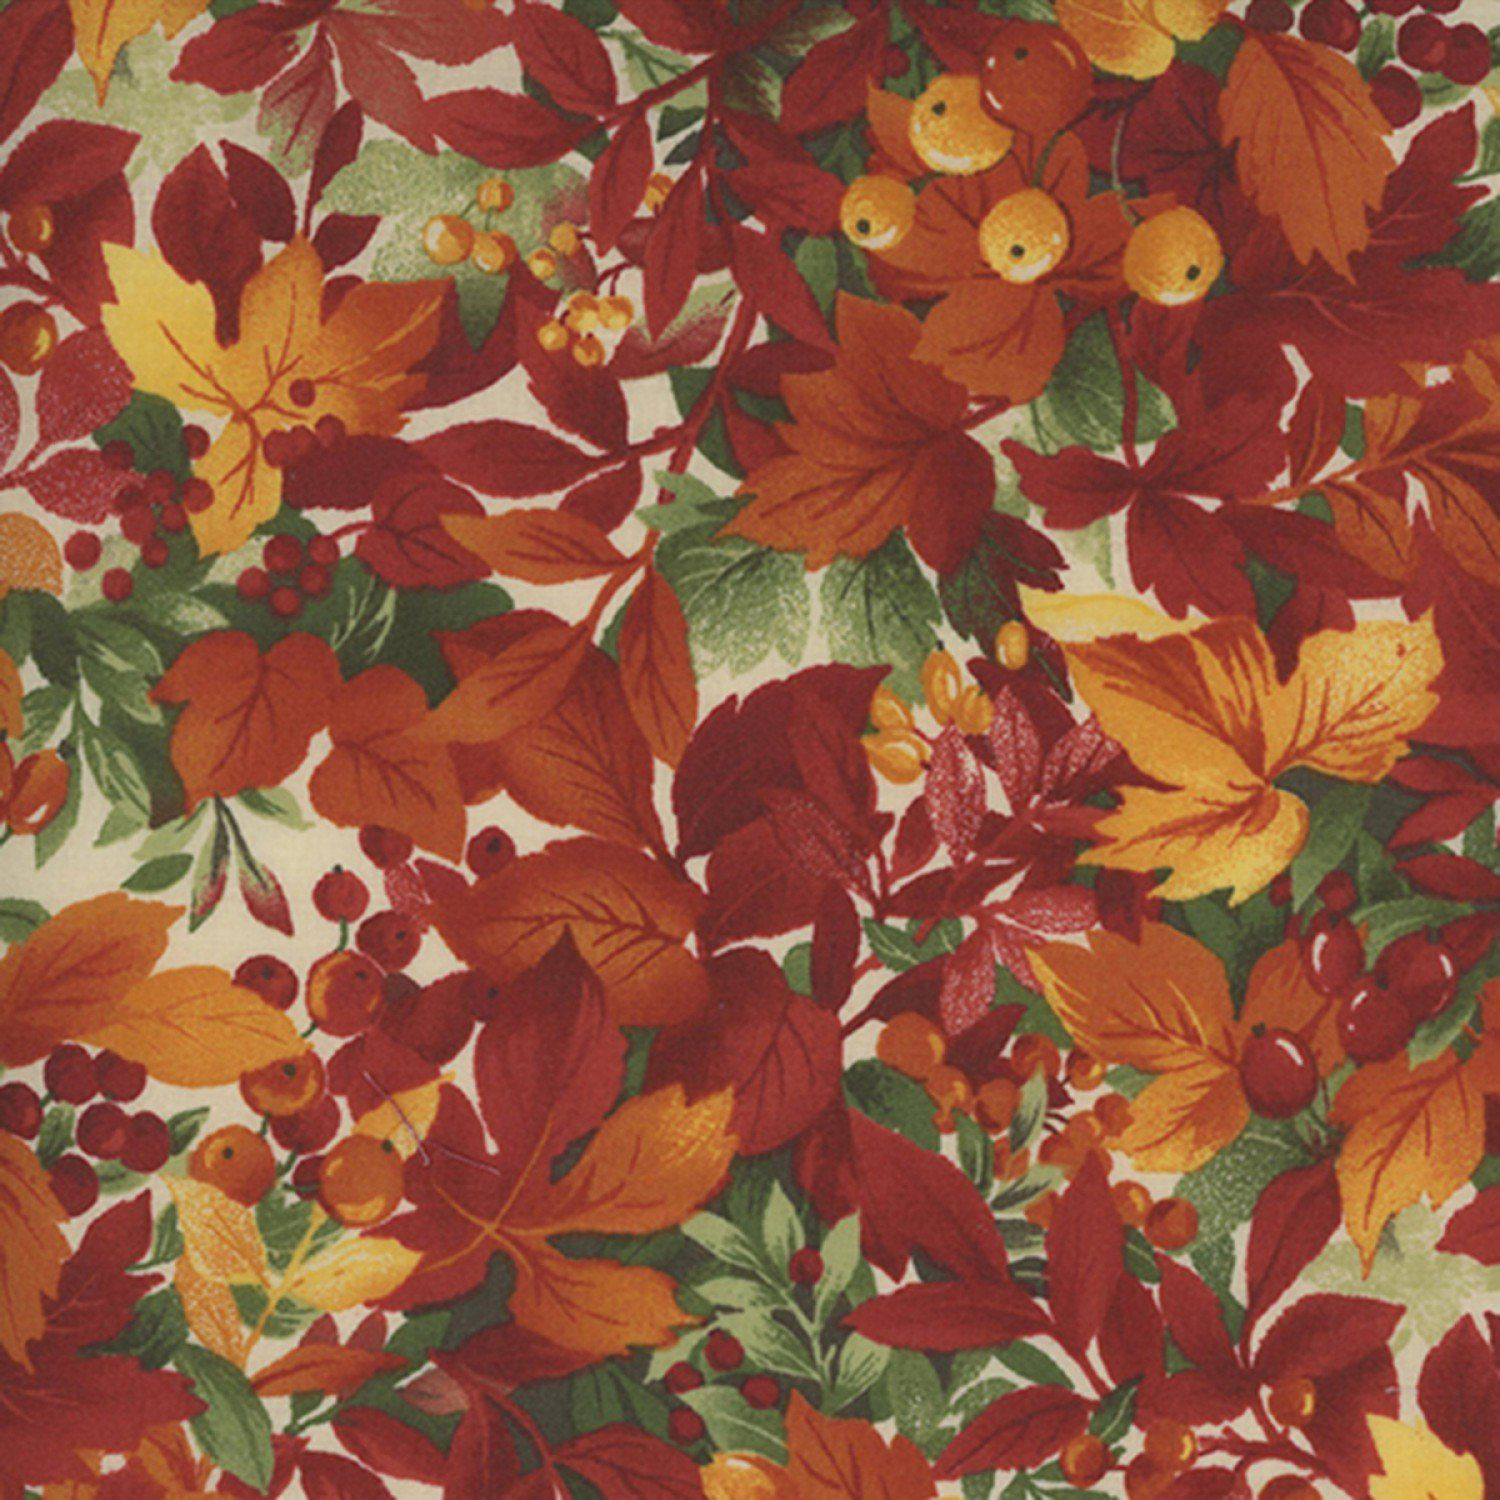 Red Berries /& Green Leaves Quilting Cotton Fabric Per FQ by FabrQquilt